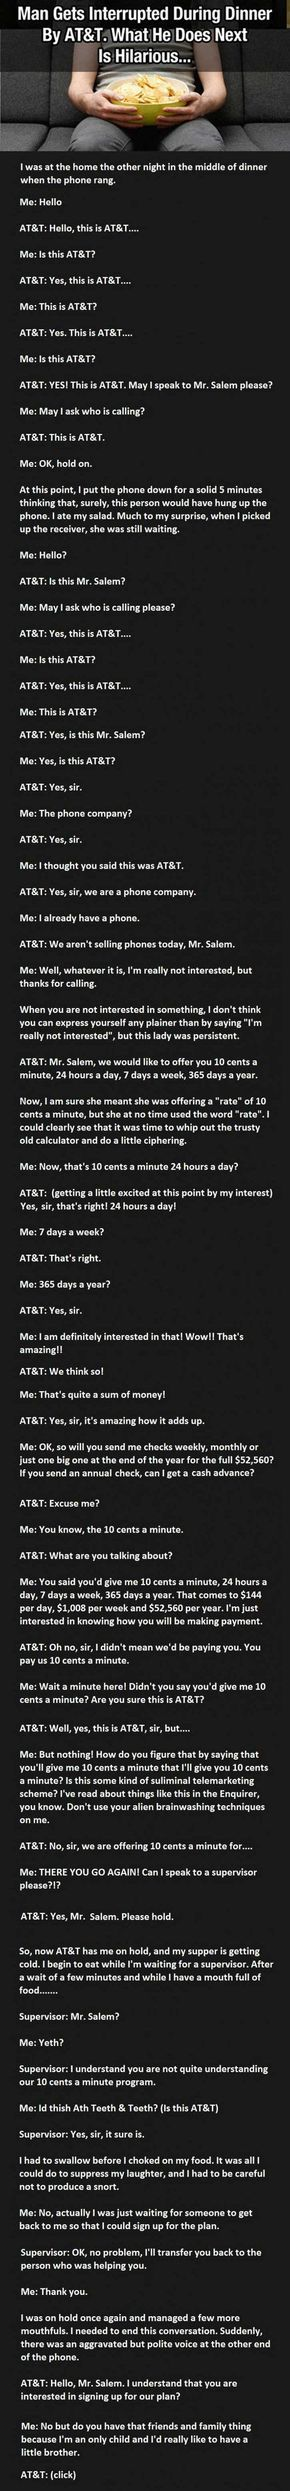 Man Gets Interrupted During Dinner By AT&T And What He Does Next Is Hilarious funny jokes story lol funny quote funny quotes funny sayings joke hilarious humor stories funny jokes